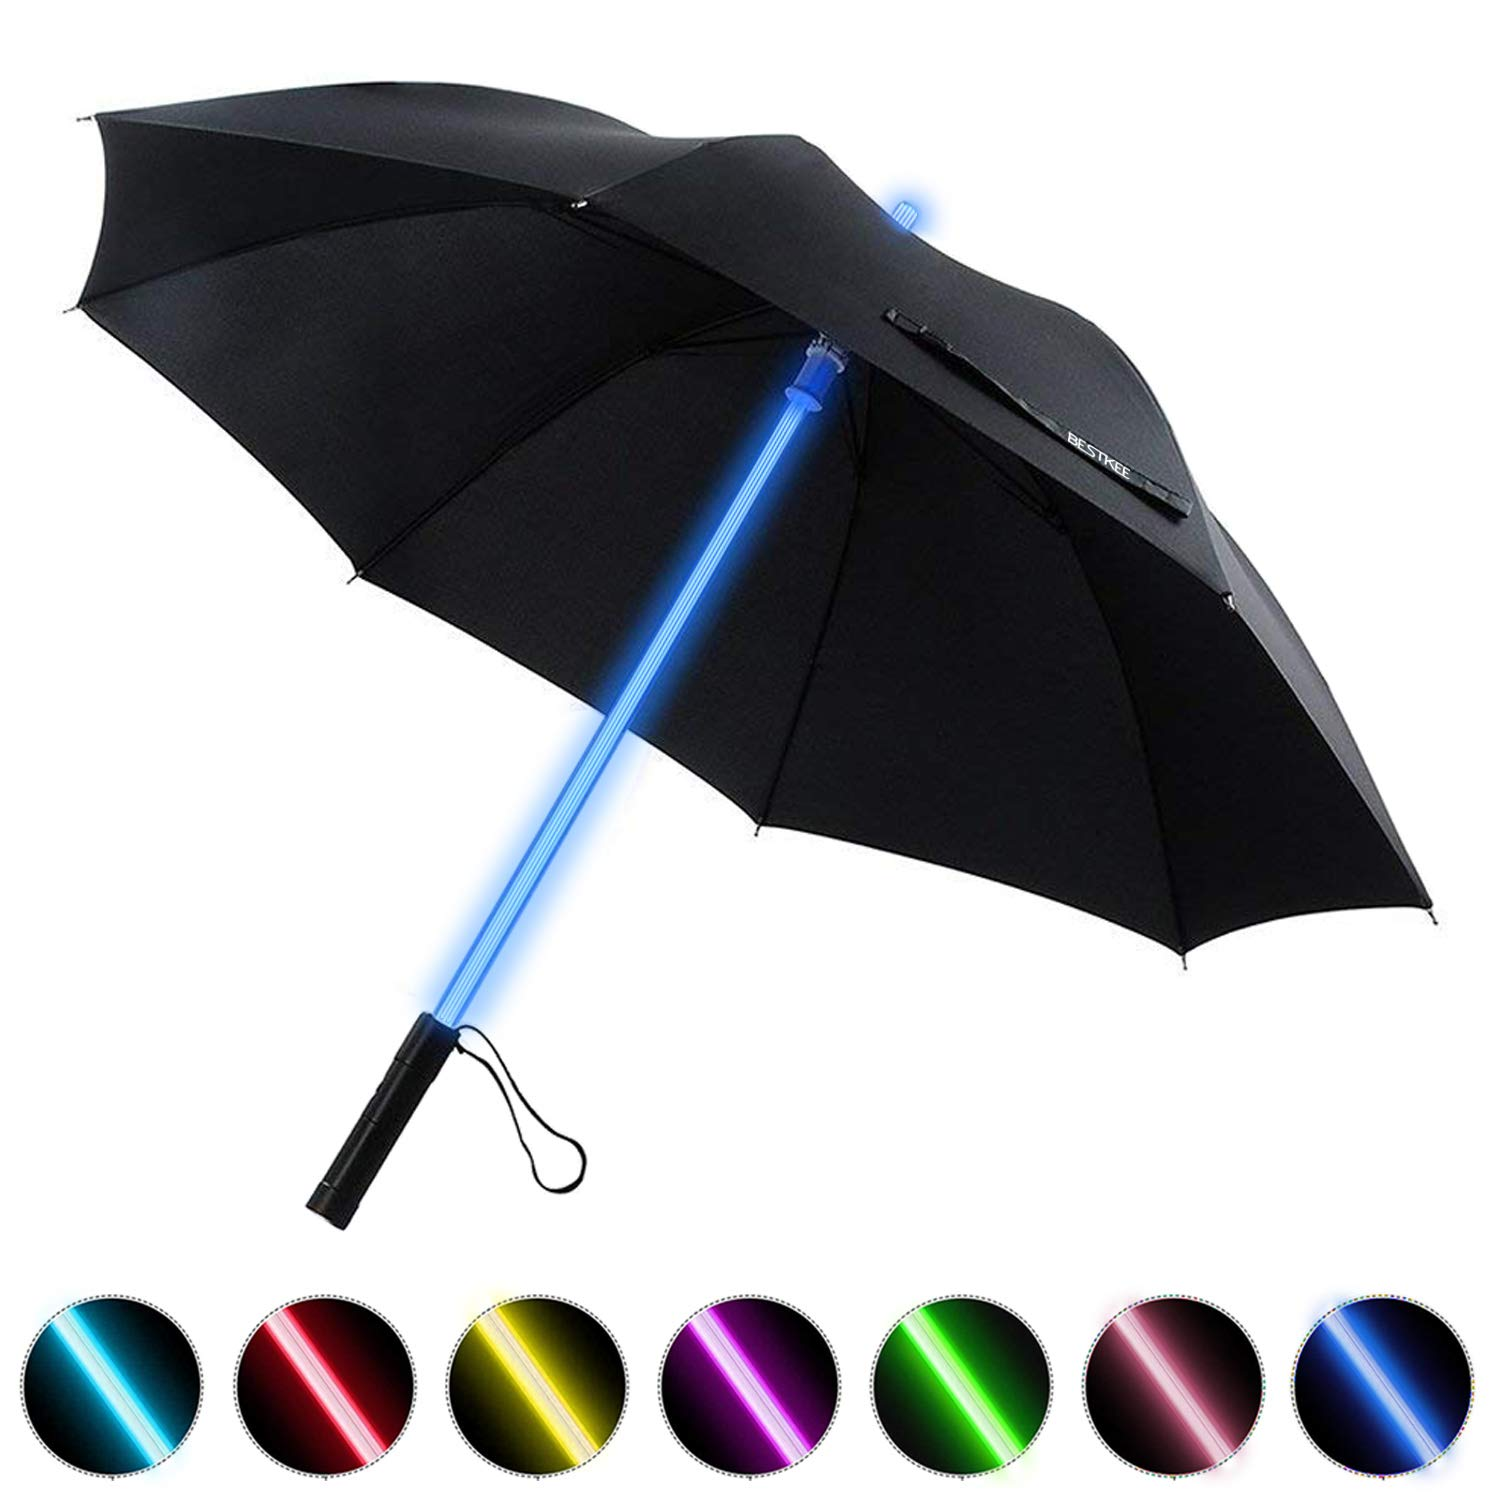 Led Umbrella Lightsaber Laser Sword Light Up 7 Pole Trailer Plug Wiring Diagram Bat Stay On With Color Changing The Shaft Built In Torch At Bottom By Bestkee Black Sports